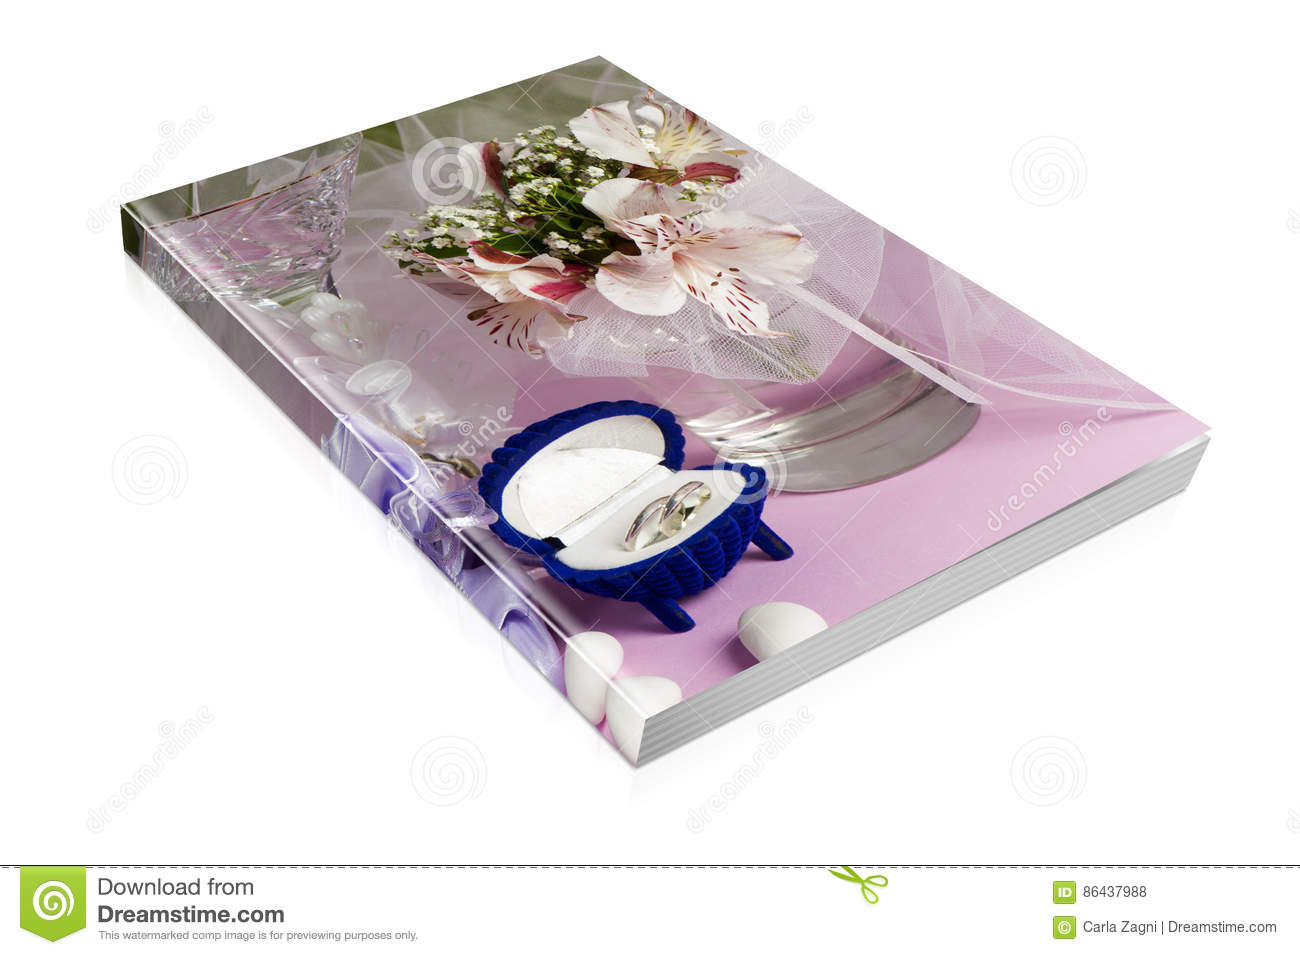 Book of wedding rings and wedding favors